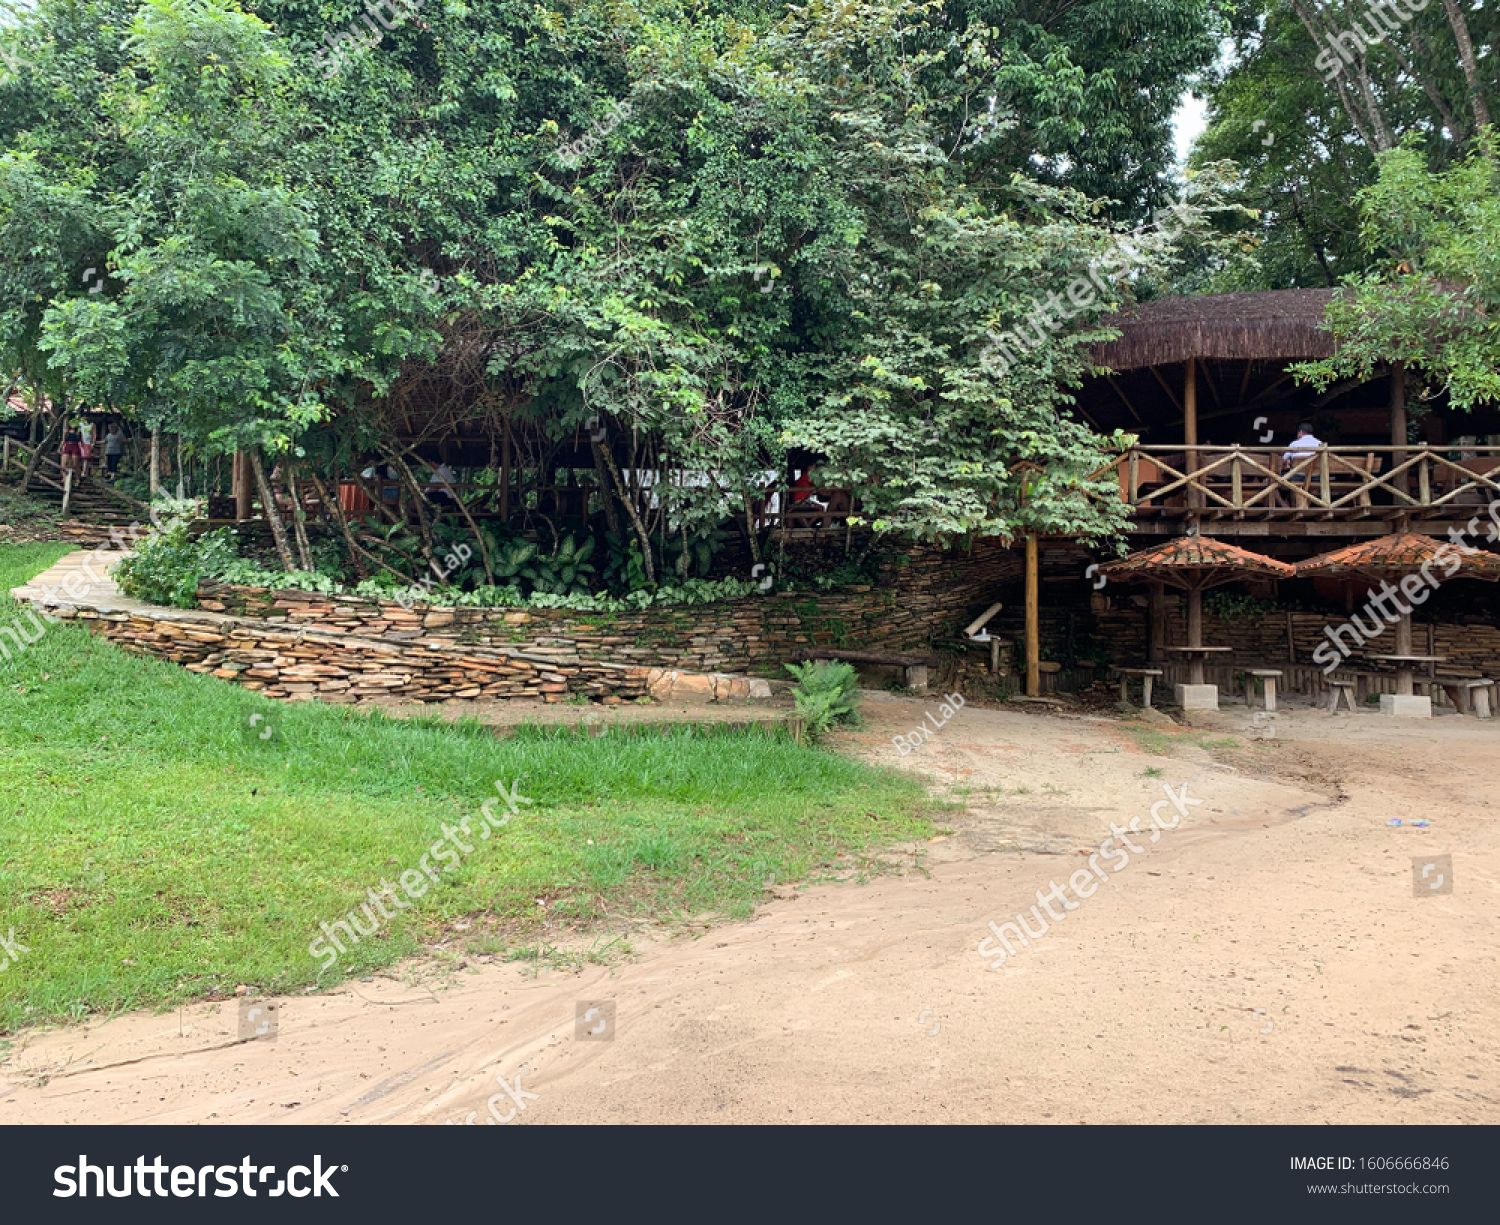 Pirenopolis, Goias, Brazil, January 7, 2020: Pedreiras Restaurant, a beautiful leisure area, a perfect place in the middle of nature and with excellent structure in the Brazilian tourist city. #Ad , #Aff, #Restaurant#Pedreiras#leisure#beautiful